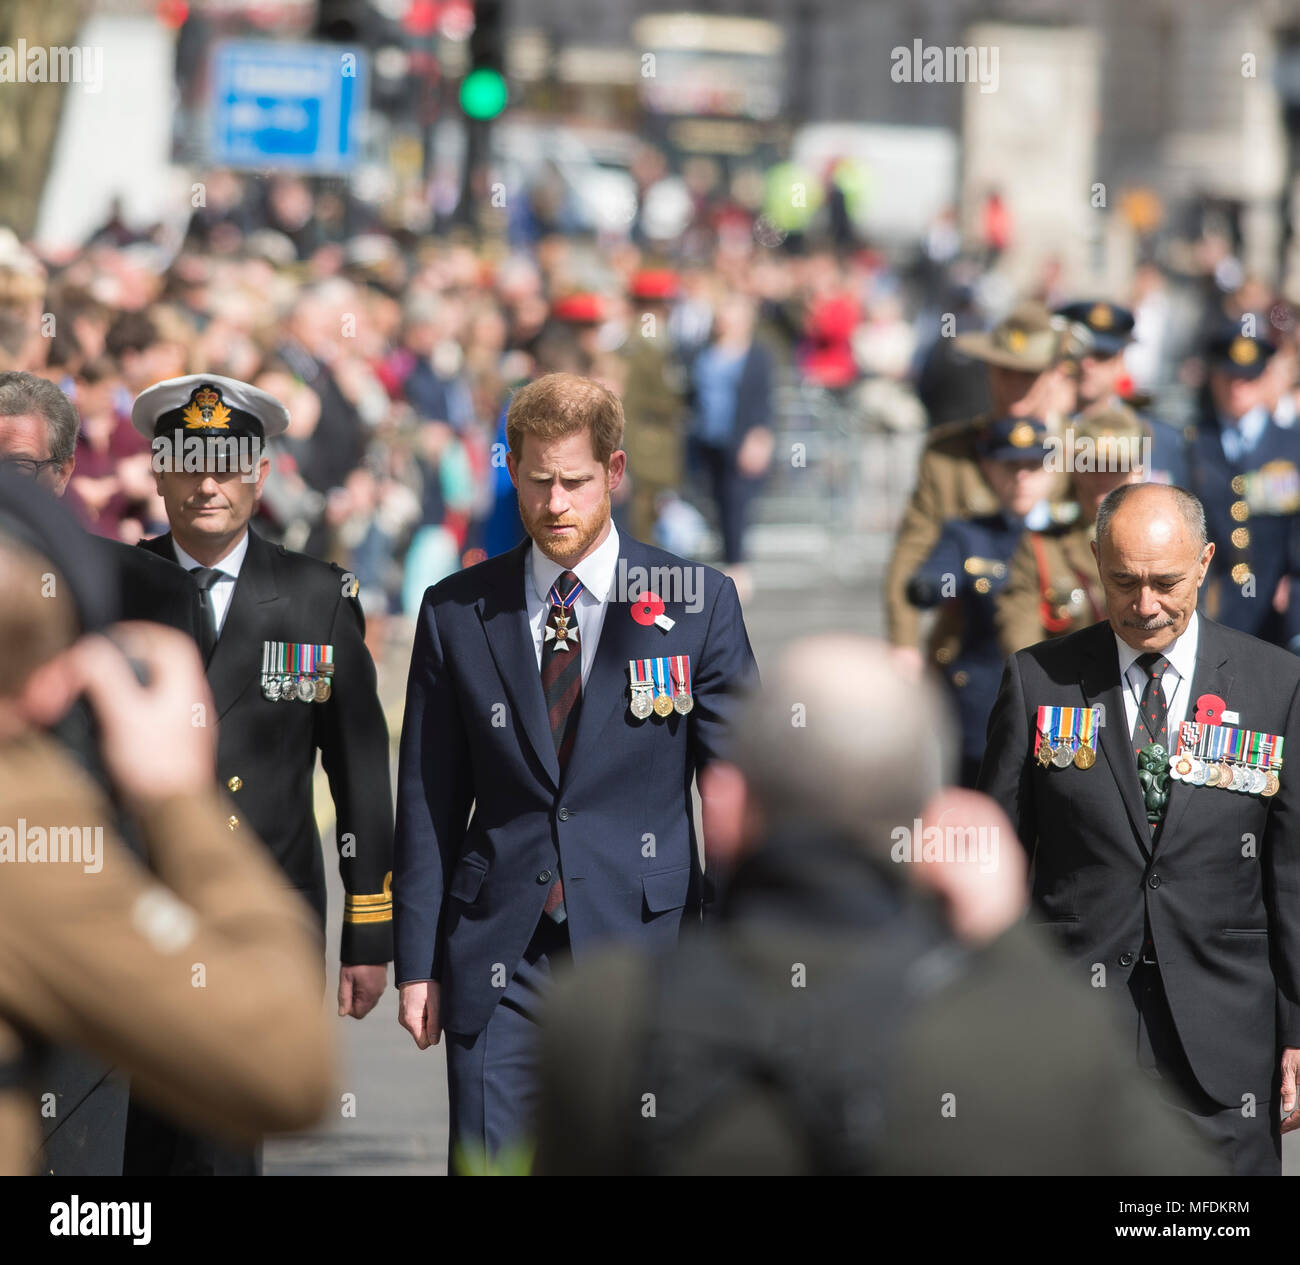 The Cenotaph, Whitehall London, UK. 25 April, 2018. Anzac Day service is held at the Cenotaph at 11.00am in London with Prince Harry attending. Credit: Malcolm Park/Alamy Live News. Stock Photo